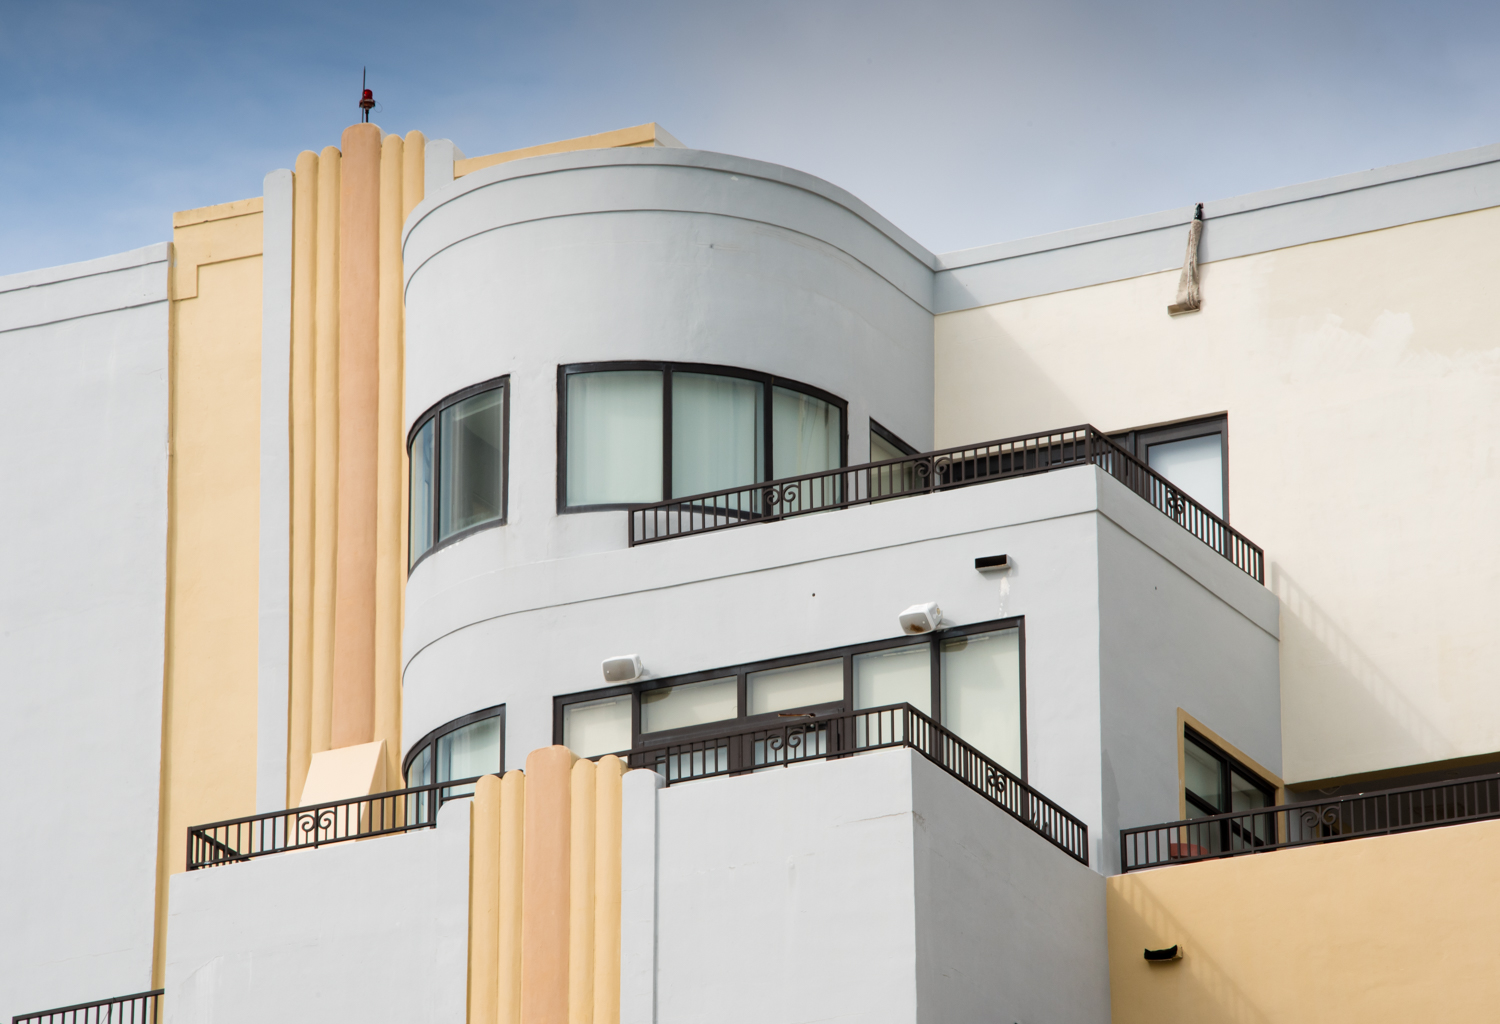 art deco walk in the south beach district of miami beach florida usa where in the world is